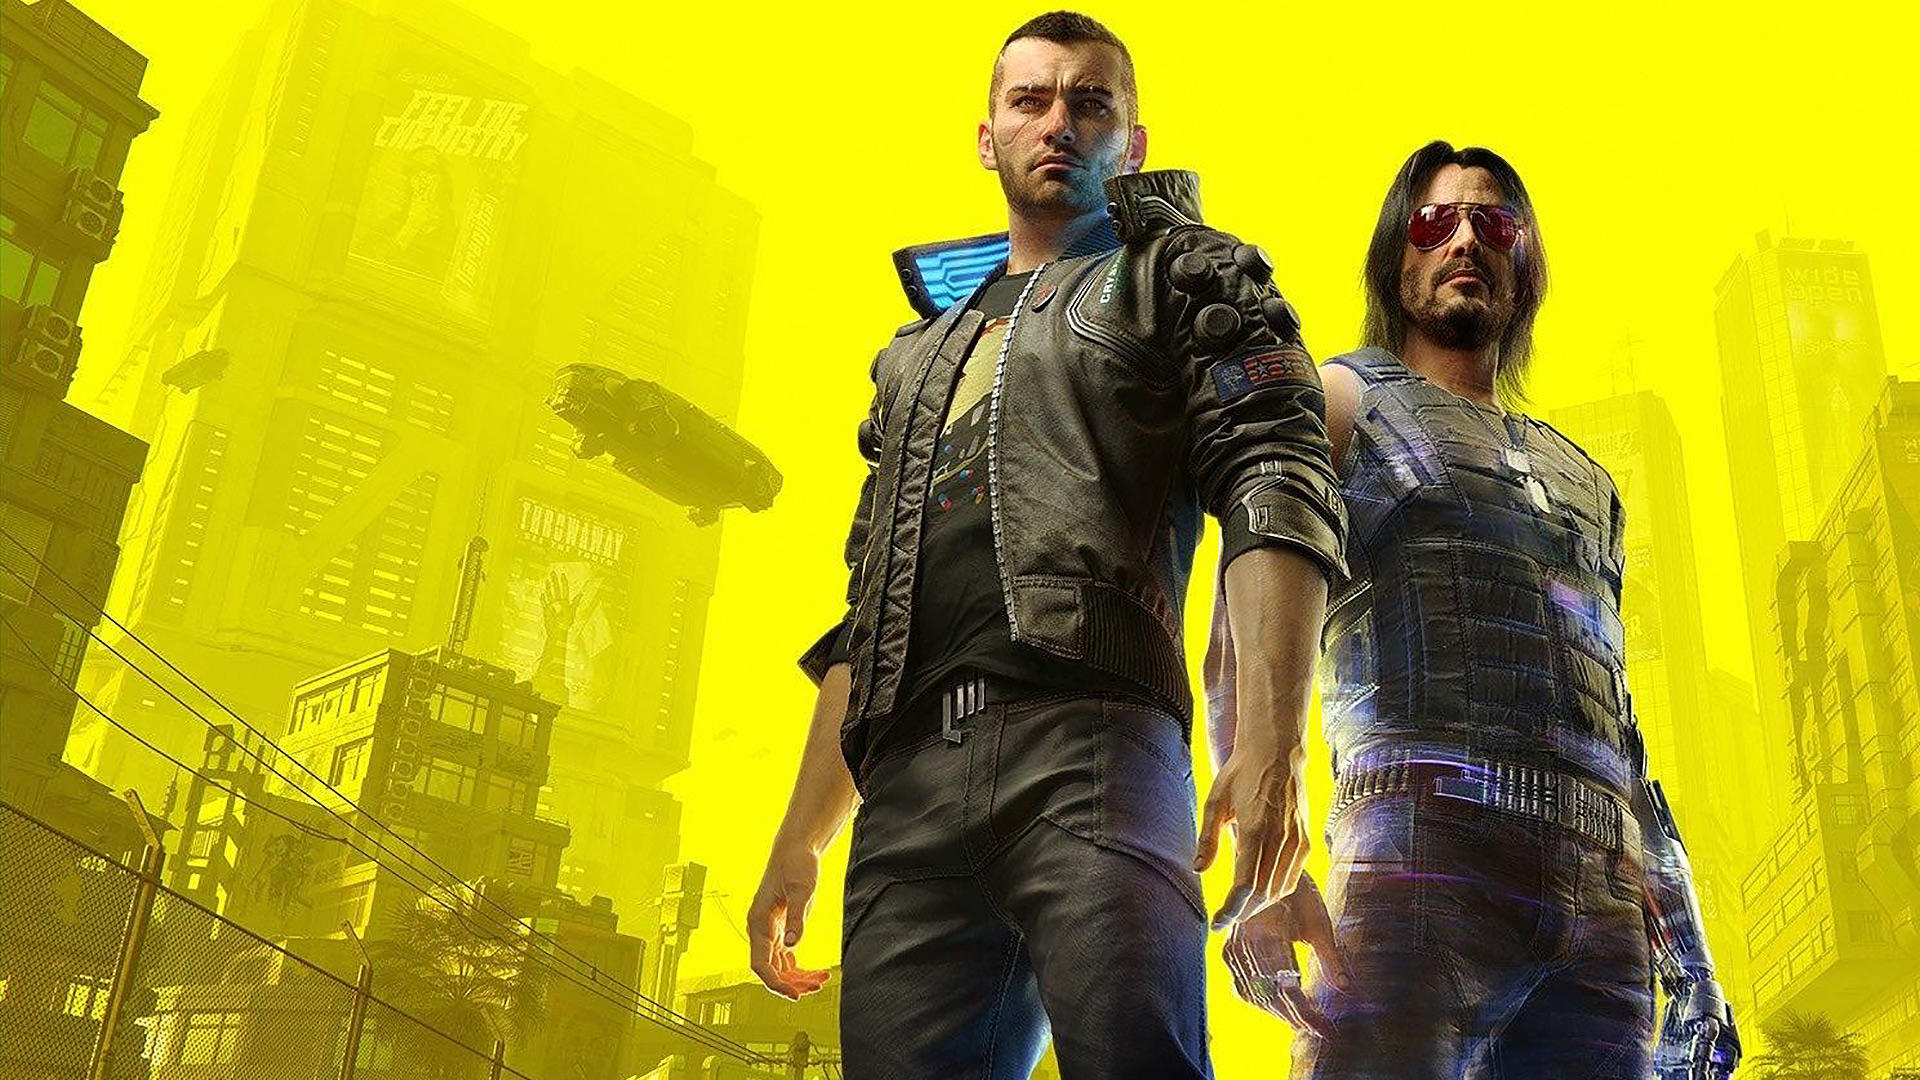 All Copies Of Cyberpunk 2077 Arrive With Some Digital Goodies, And More If You Link Your GOG.com Account